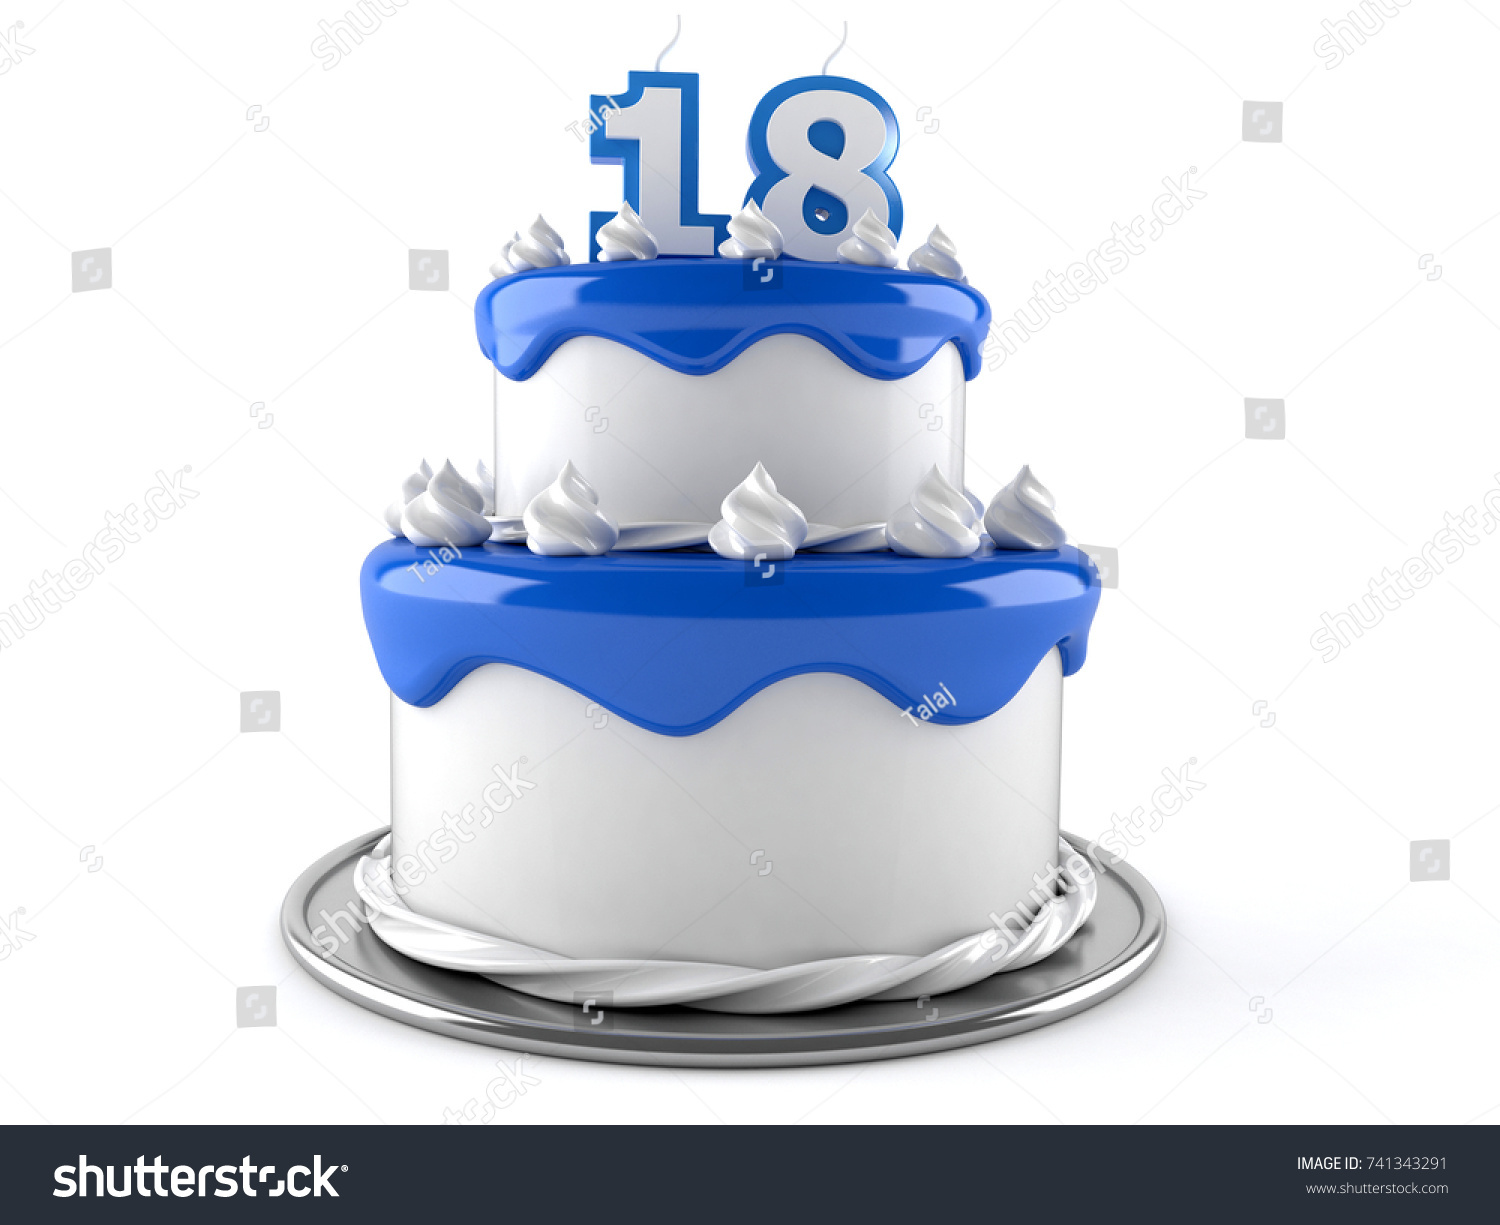 Birthday Cake With 18 Number Candles Isolated On White Background 3d Illustration